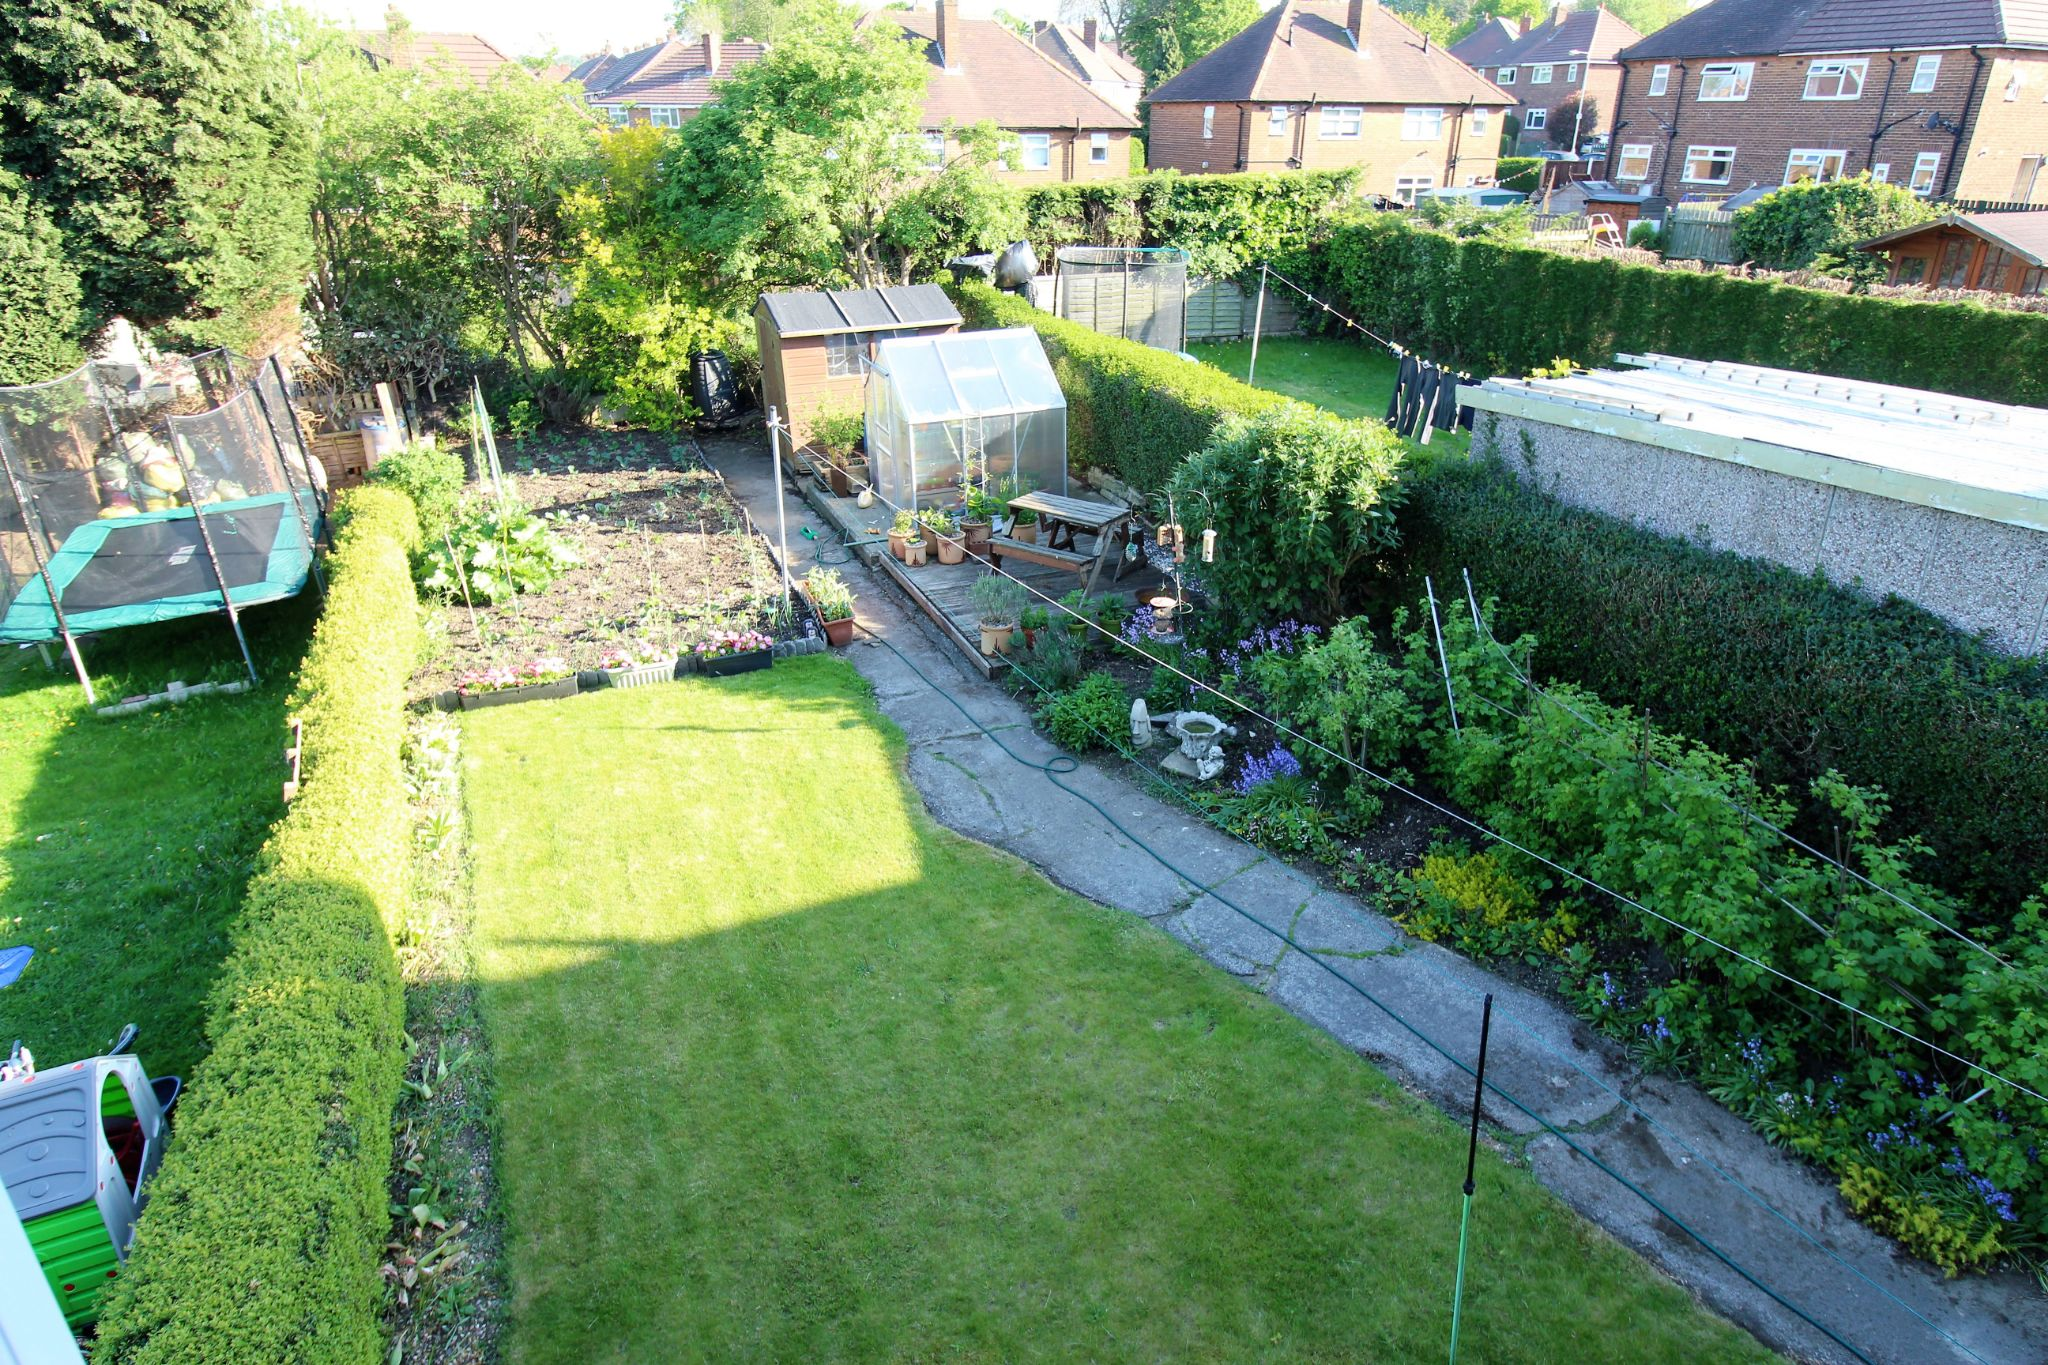 3 bedroom semi-detached house SSTC in Brighouse - Garden view from bedroom 1